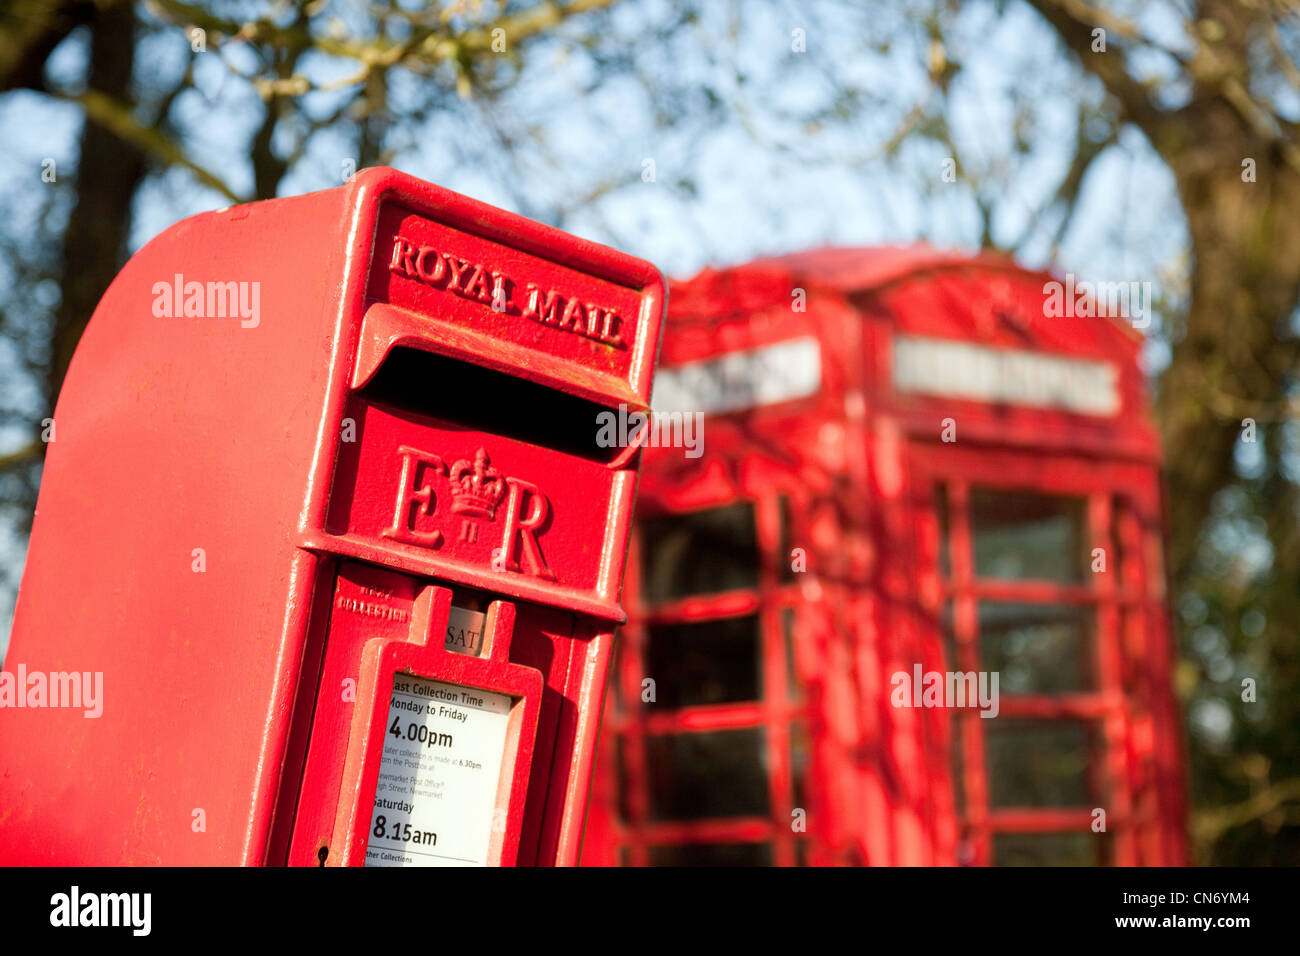 A red postbox and red telephone box, Dullingham village Cambridgeshire East Anglia UK - Stock Image